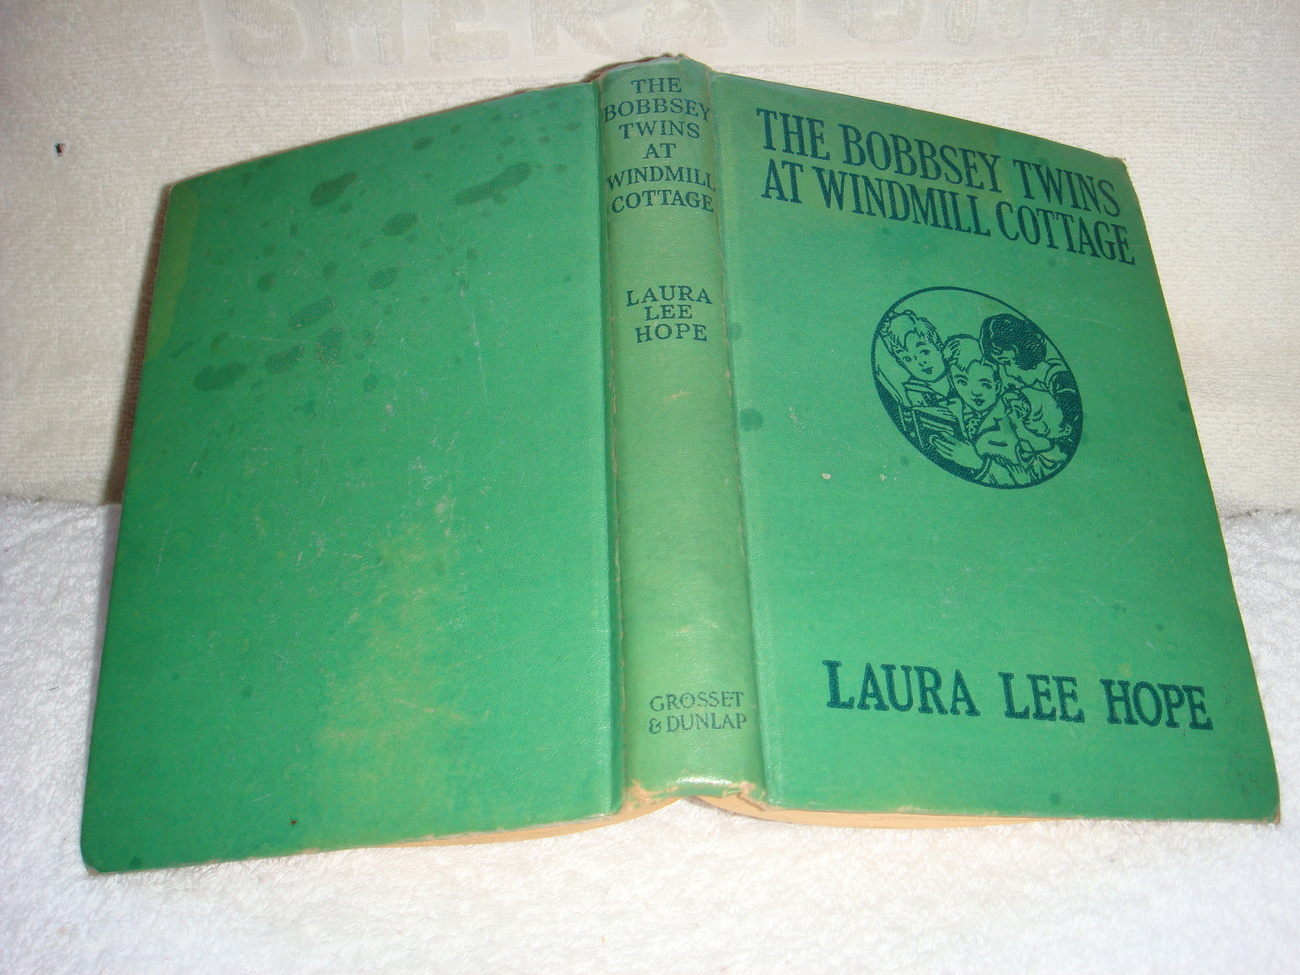 The Bobbsey Twins at Windmill Cottage 31 orange EP hc early 1940s printing